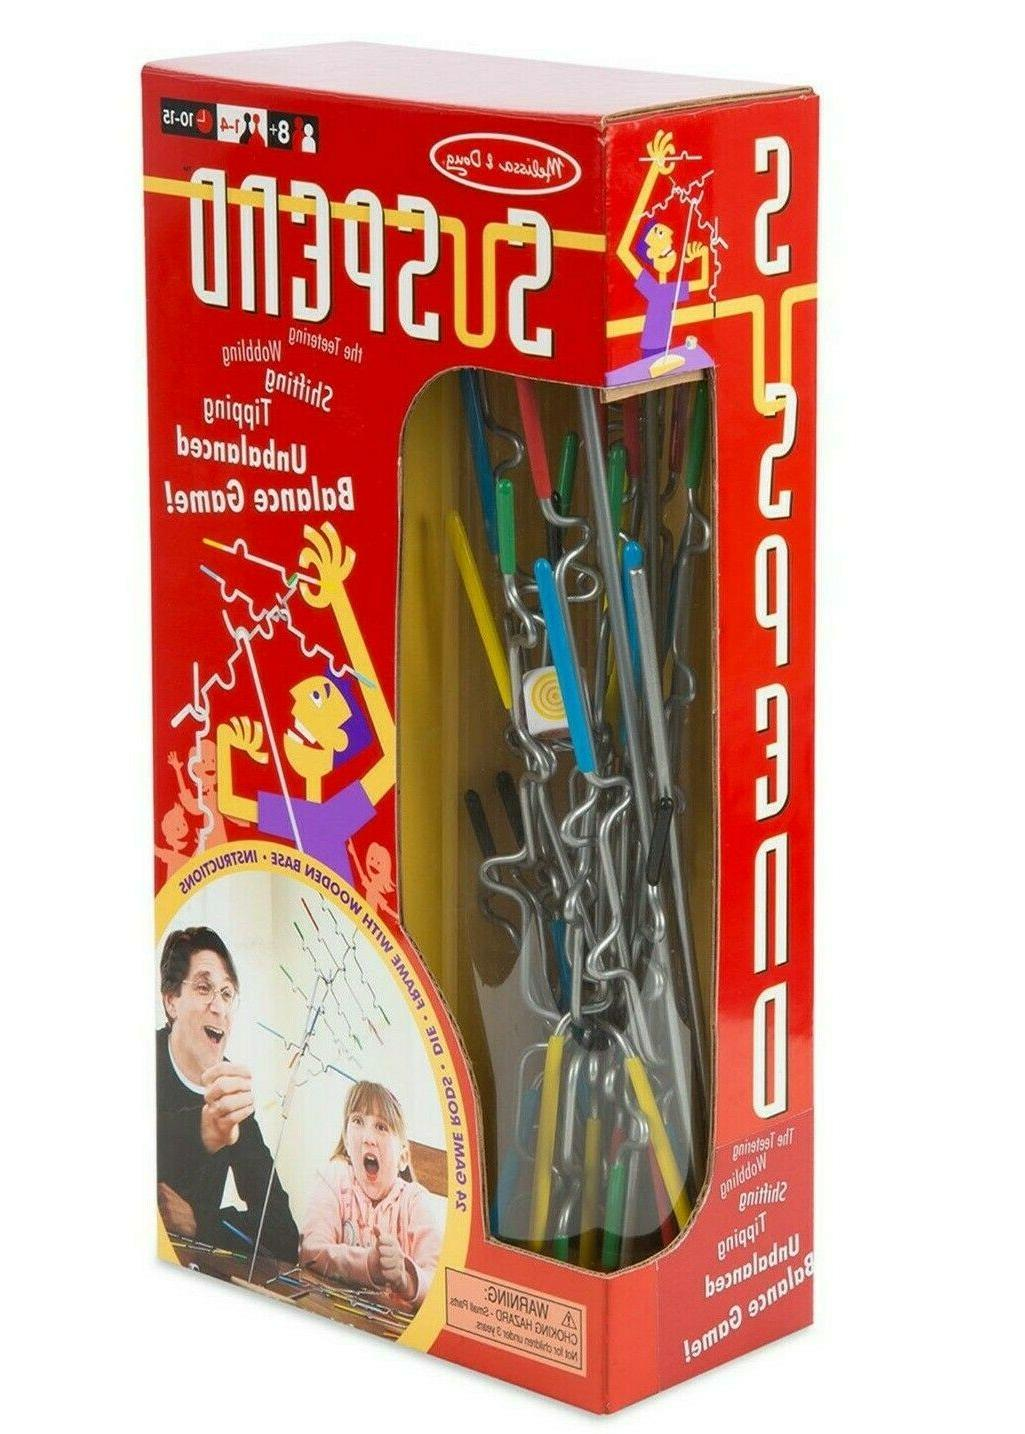 melissa and doug suspend family game developes